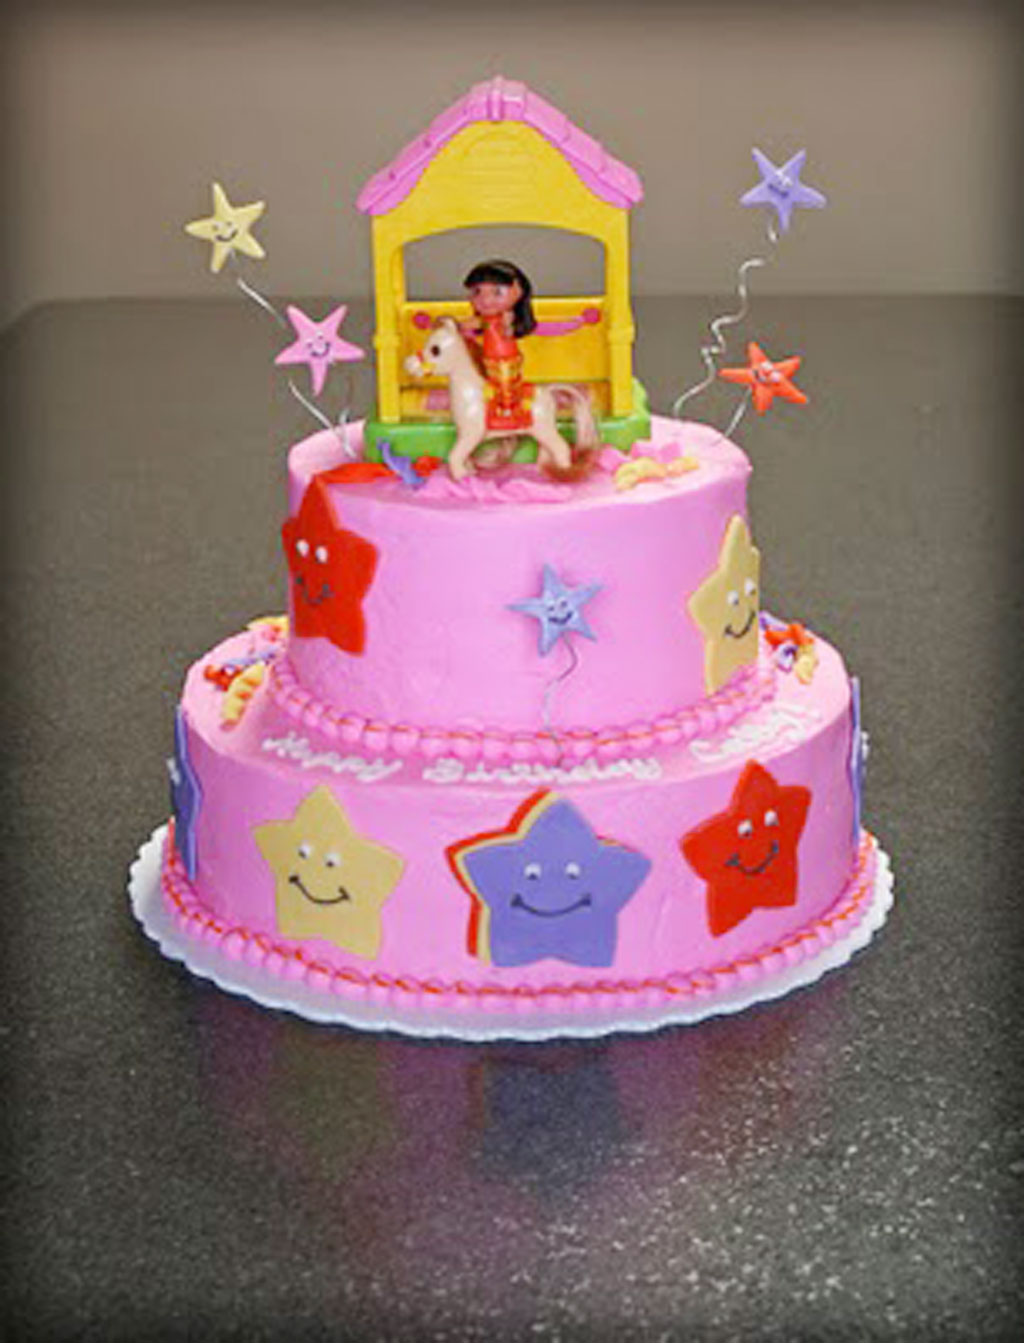 Cake Designs Dora The Explorer : Dora The Explorer Birthday Cake Design Birthday Cake ...